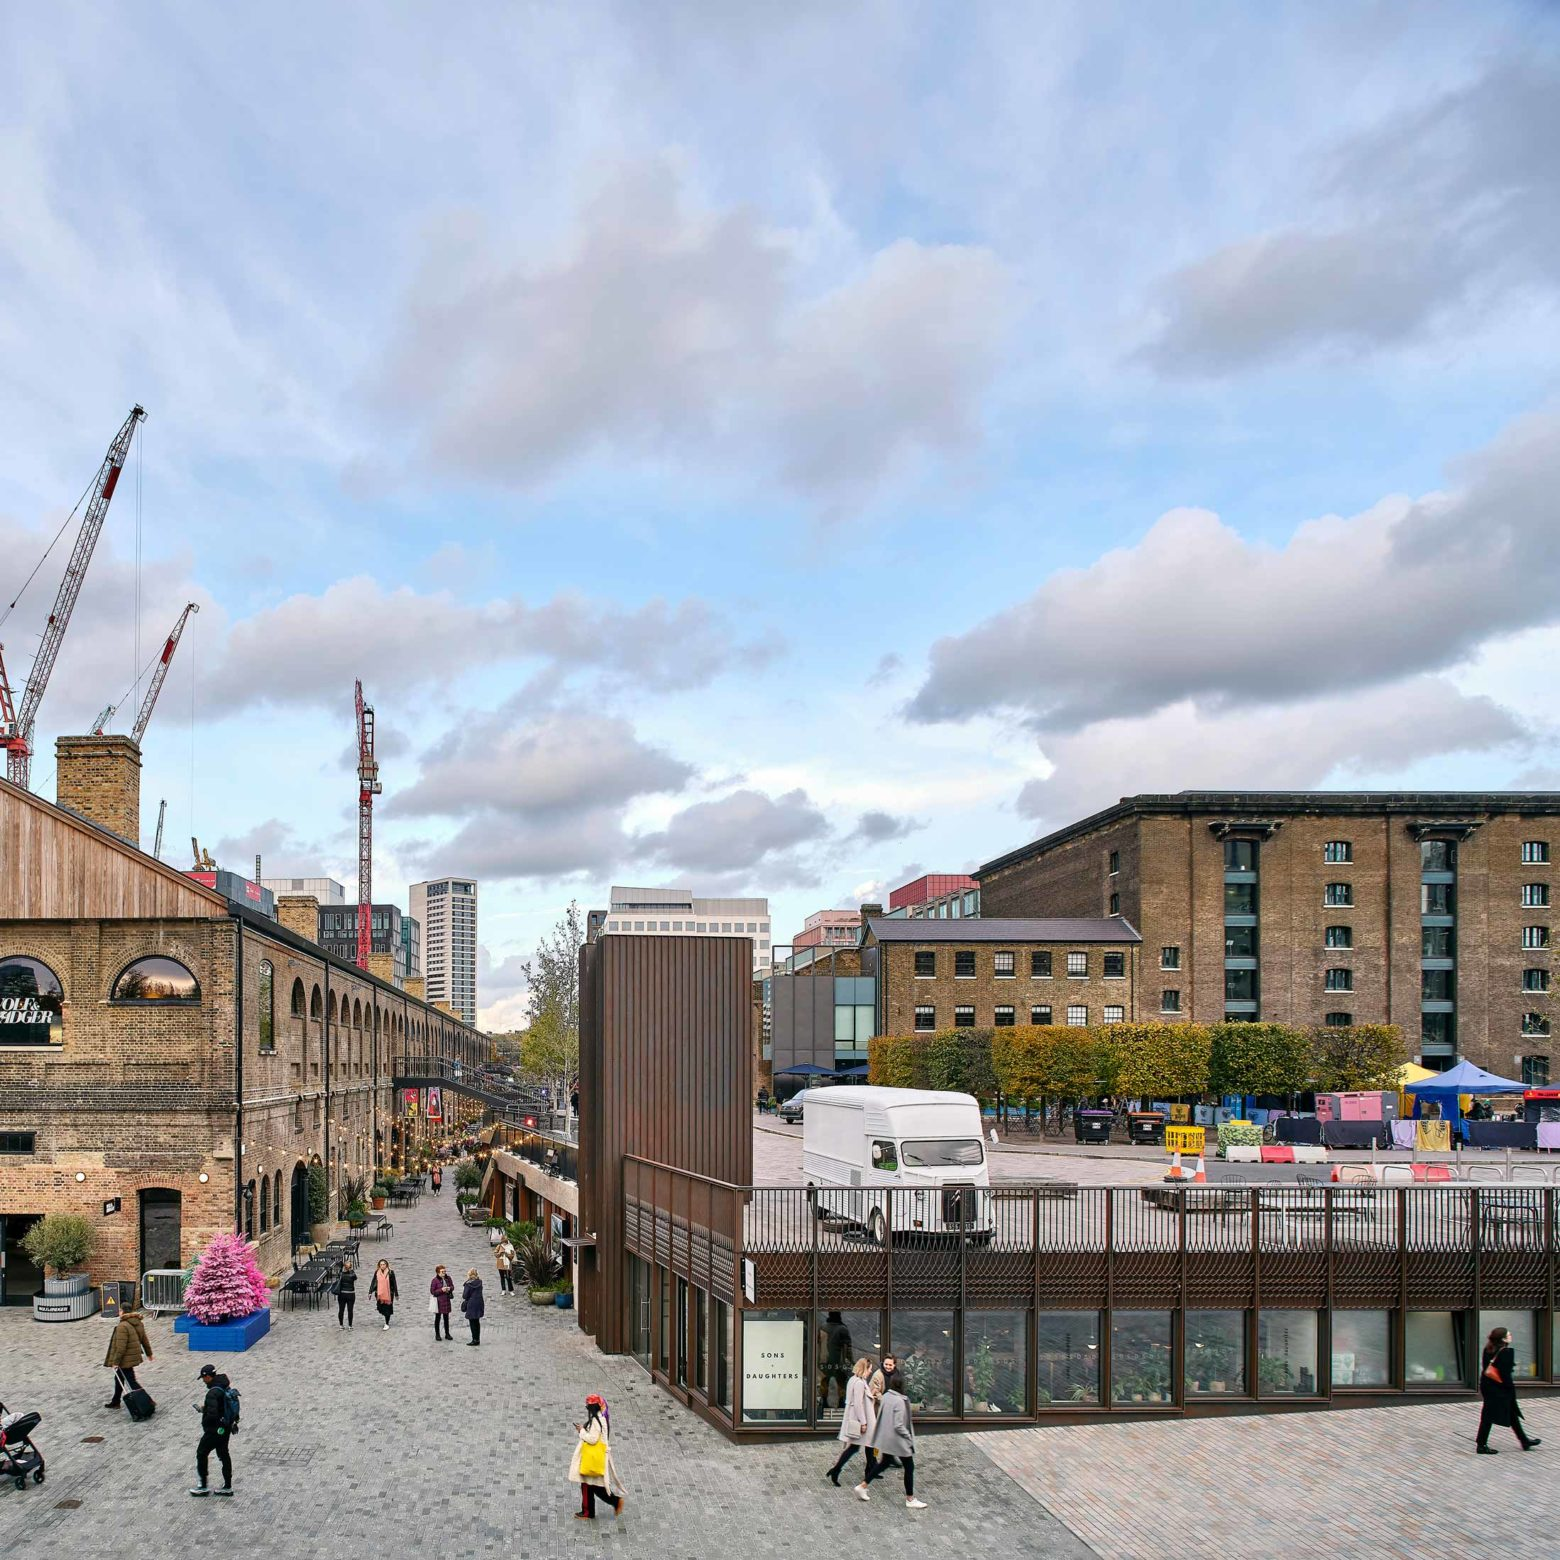 Pavilion in King's Cross completed